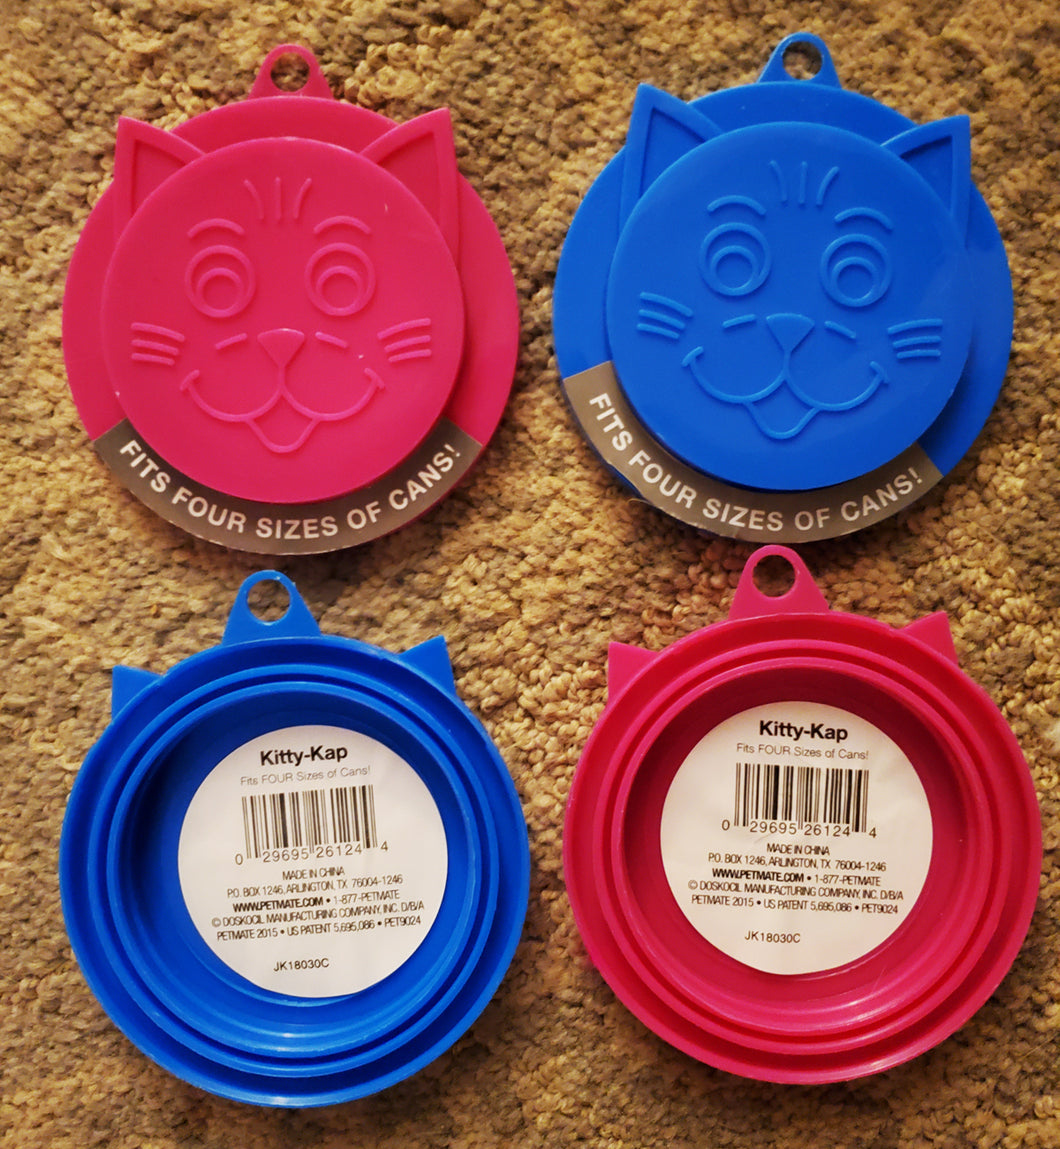 Petmate Kitty Kap Cat Food Can Lid, from Cat Supplies and More